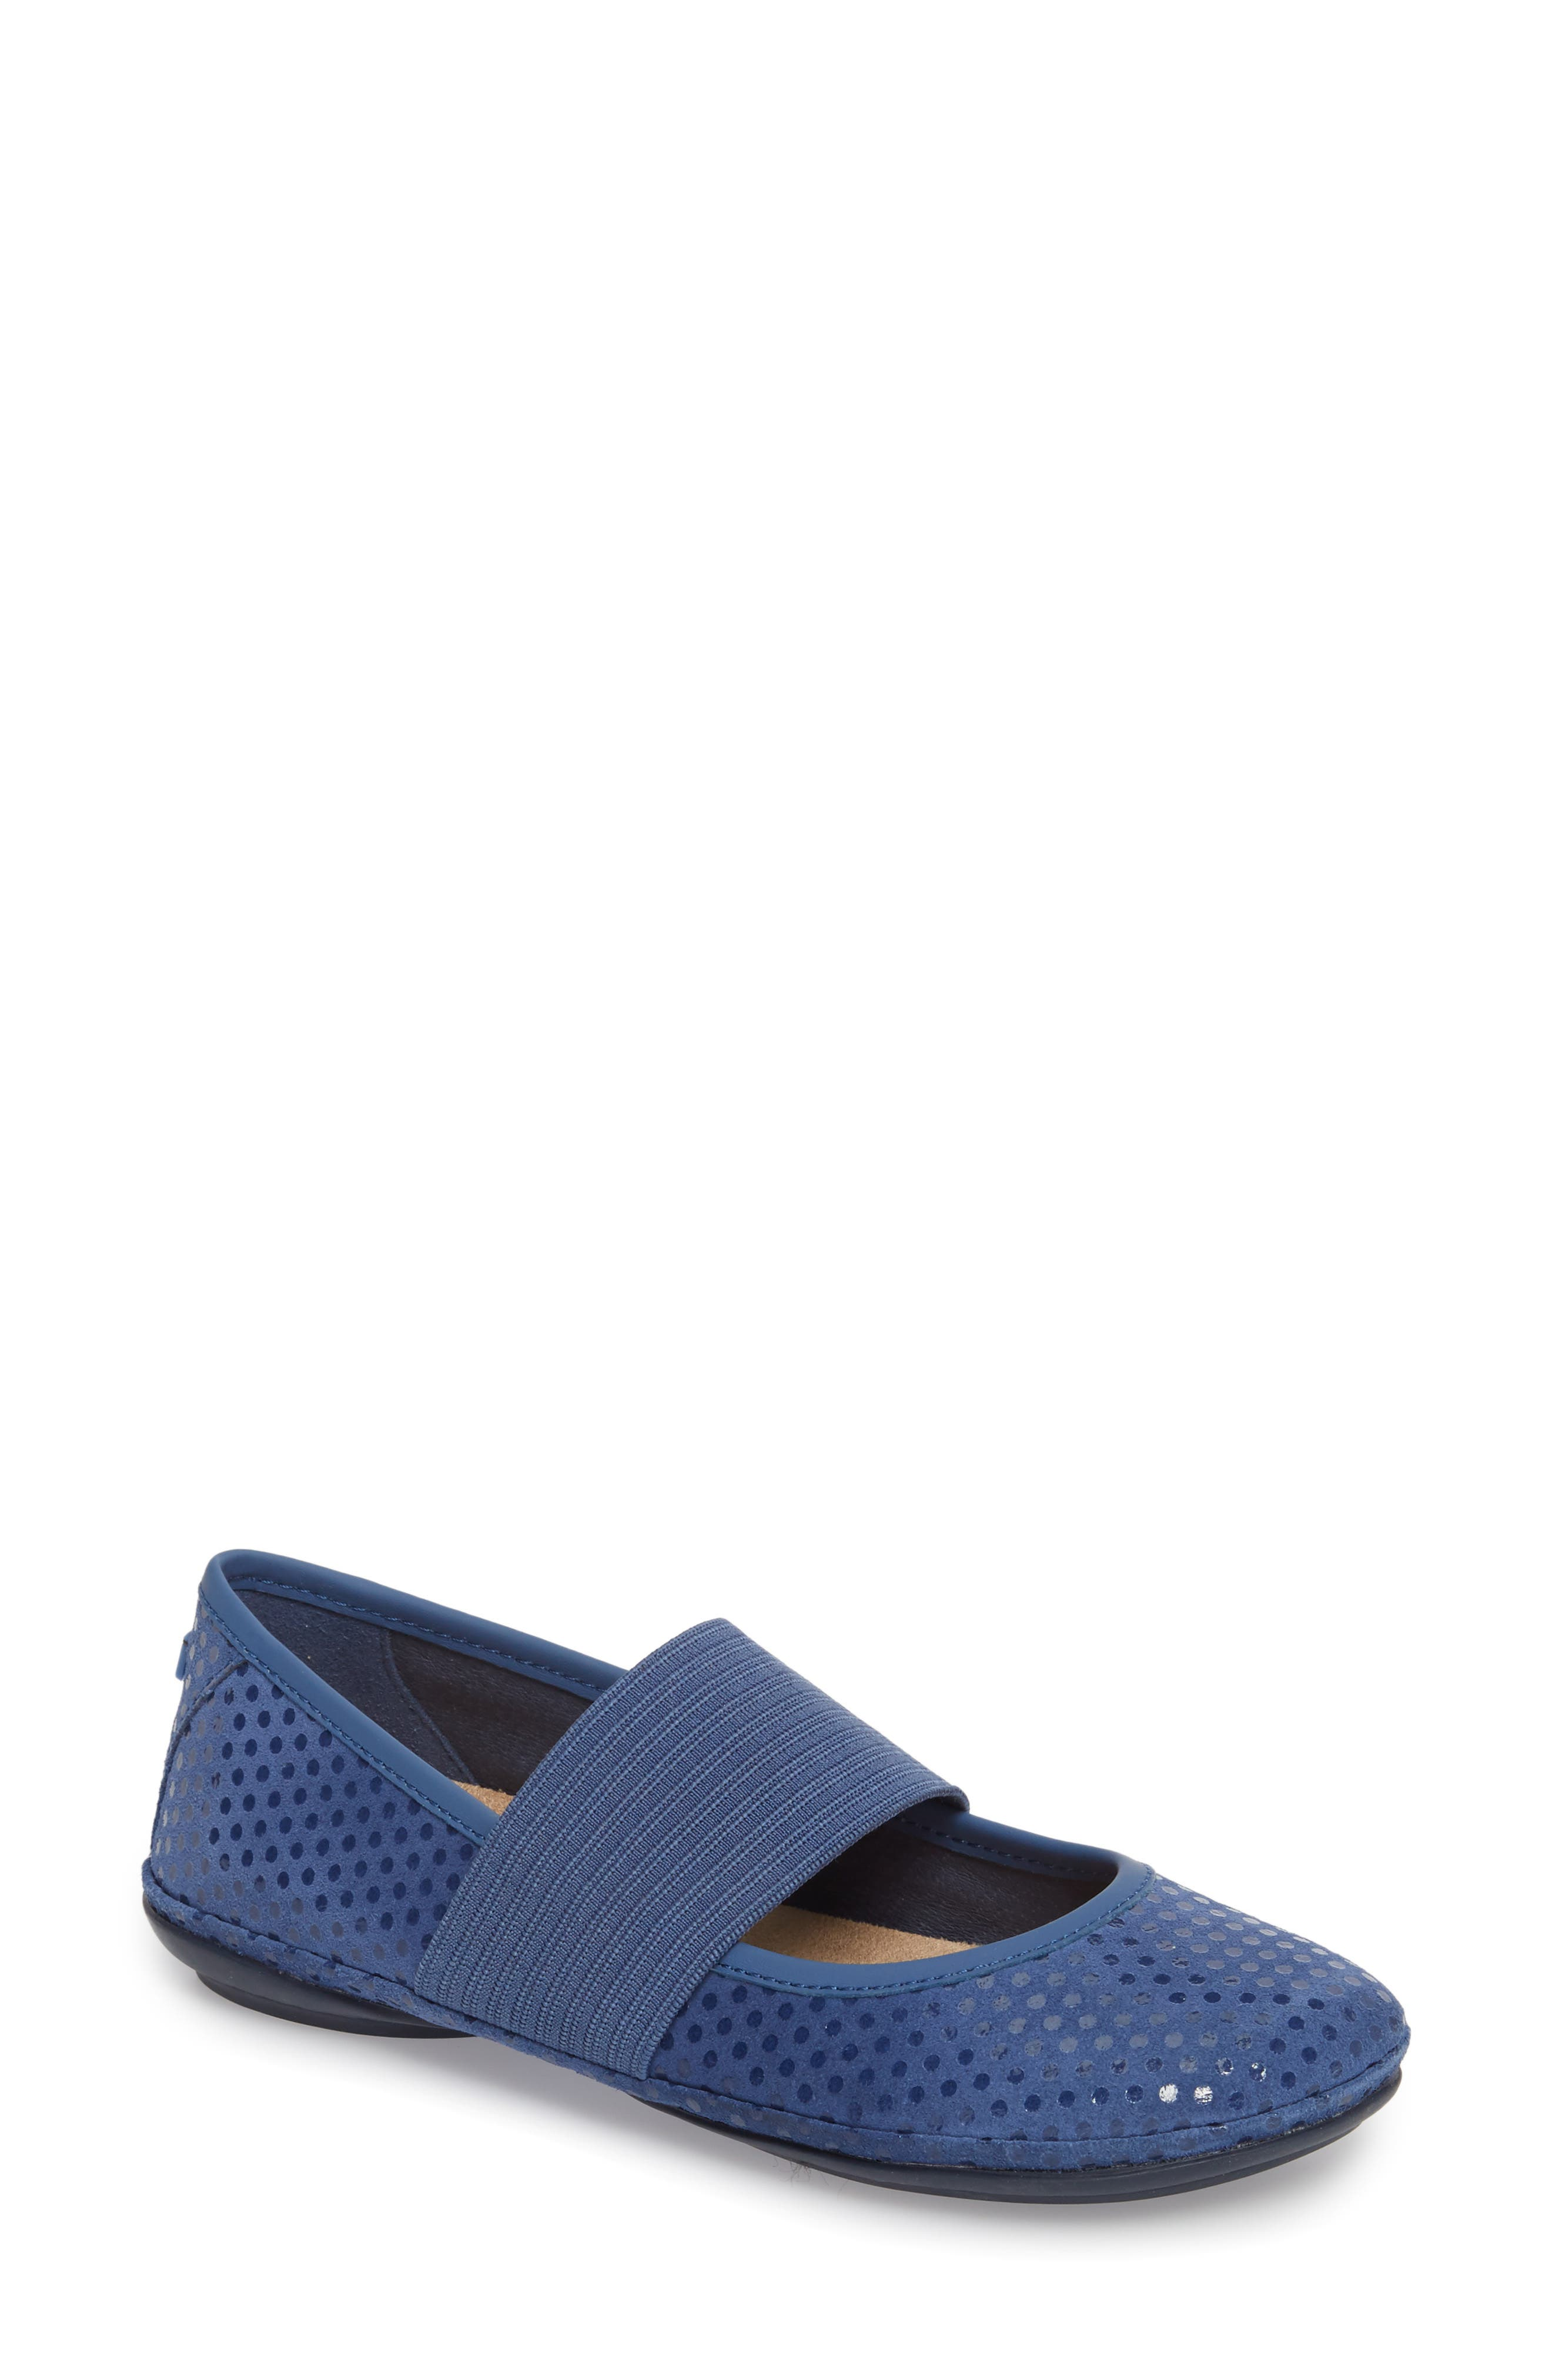 Right Nina Ballerina Flat,                             Main thumbnail 1, color,                             Medium Blue Nubuck